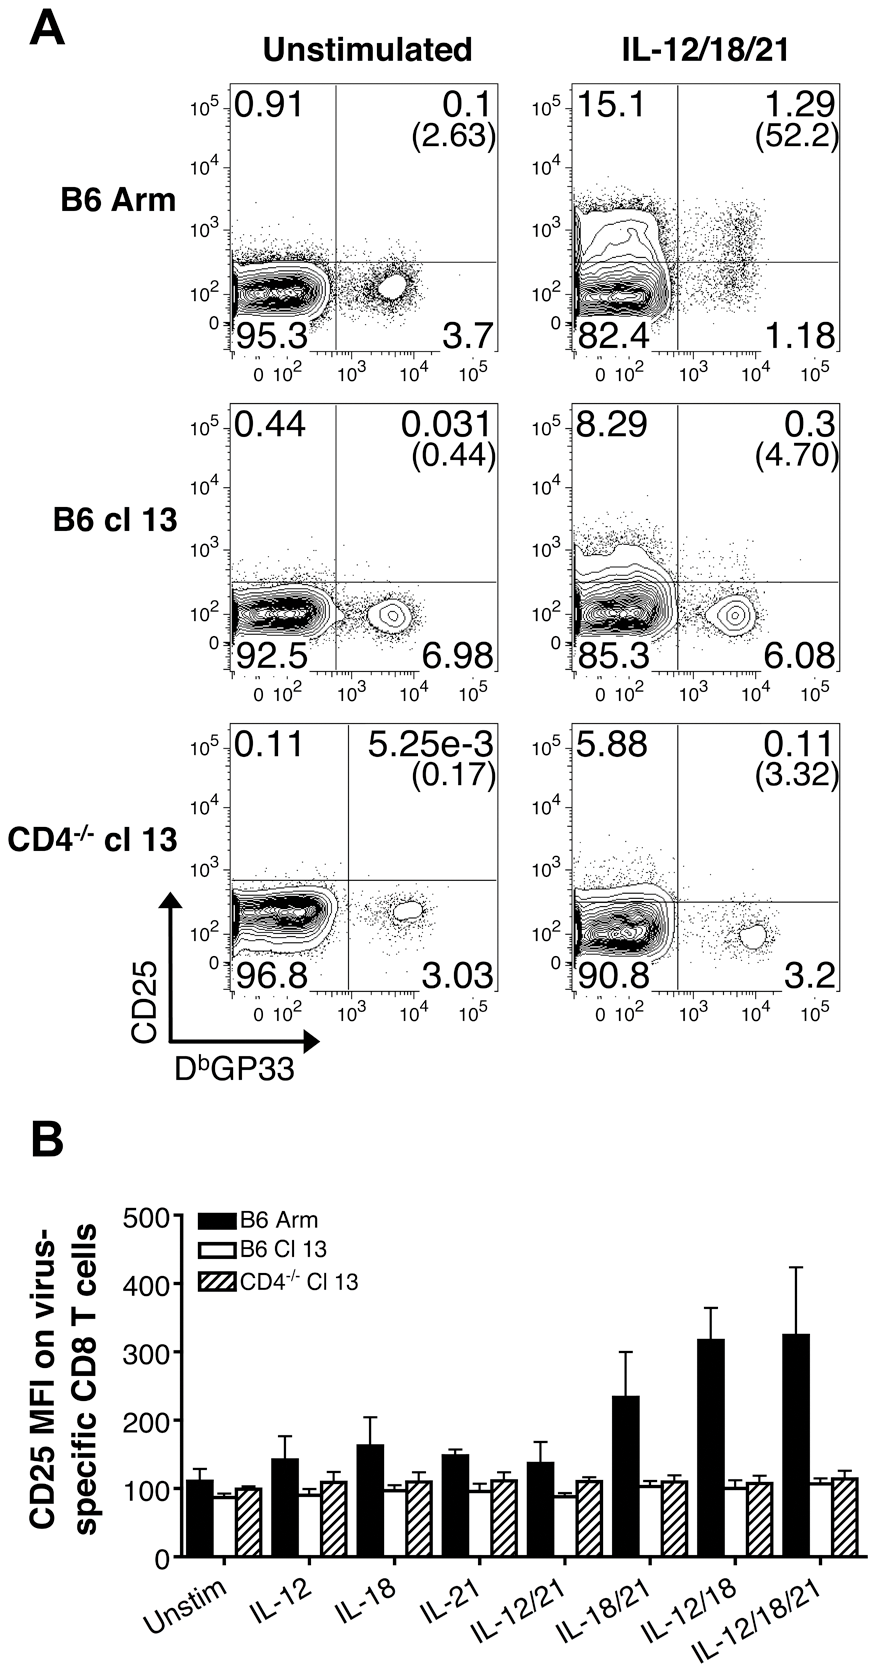 Exhausted CD8 T cells do not upregulate CD25 expression following IL-12, IL-18, and/or IL-21 exposure.